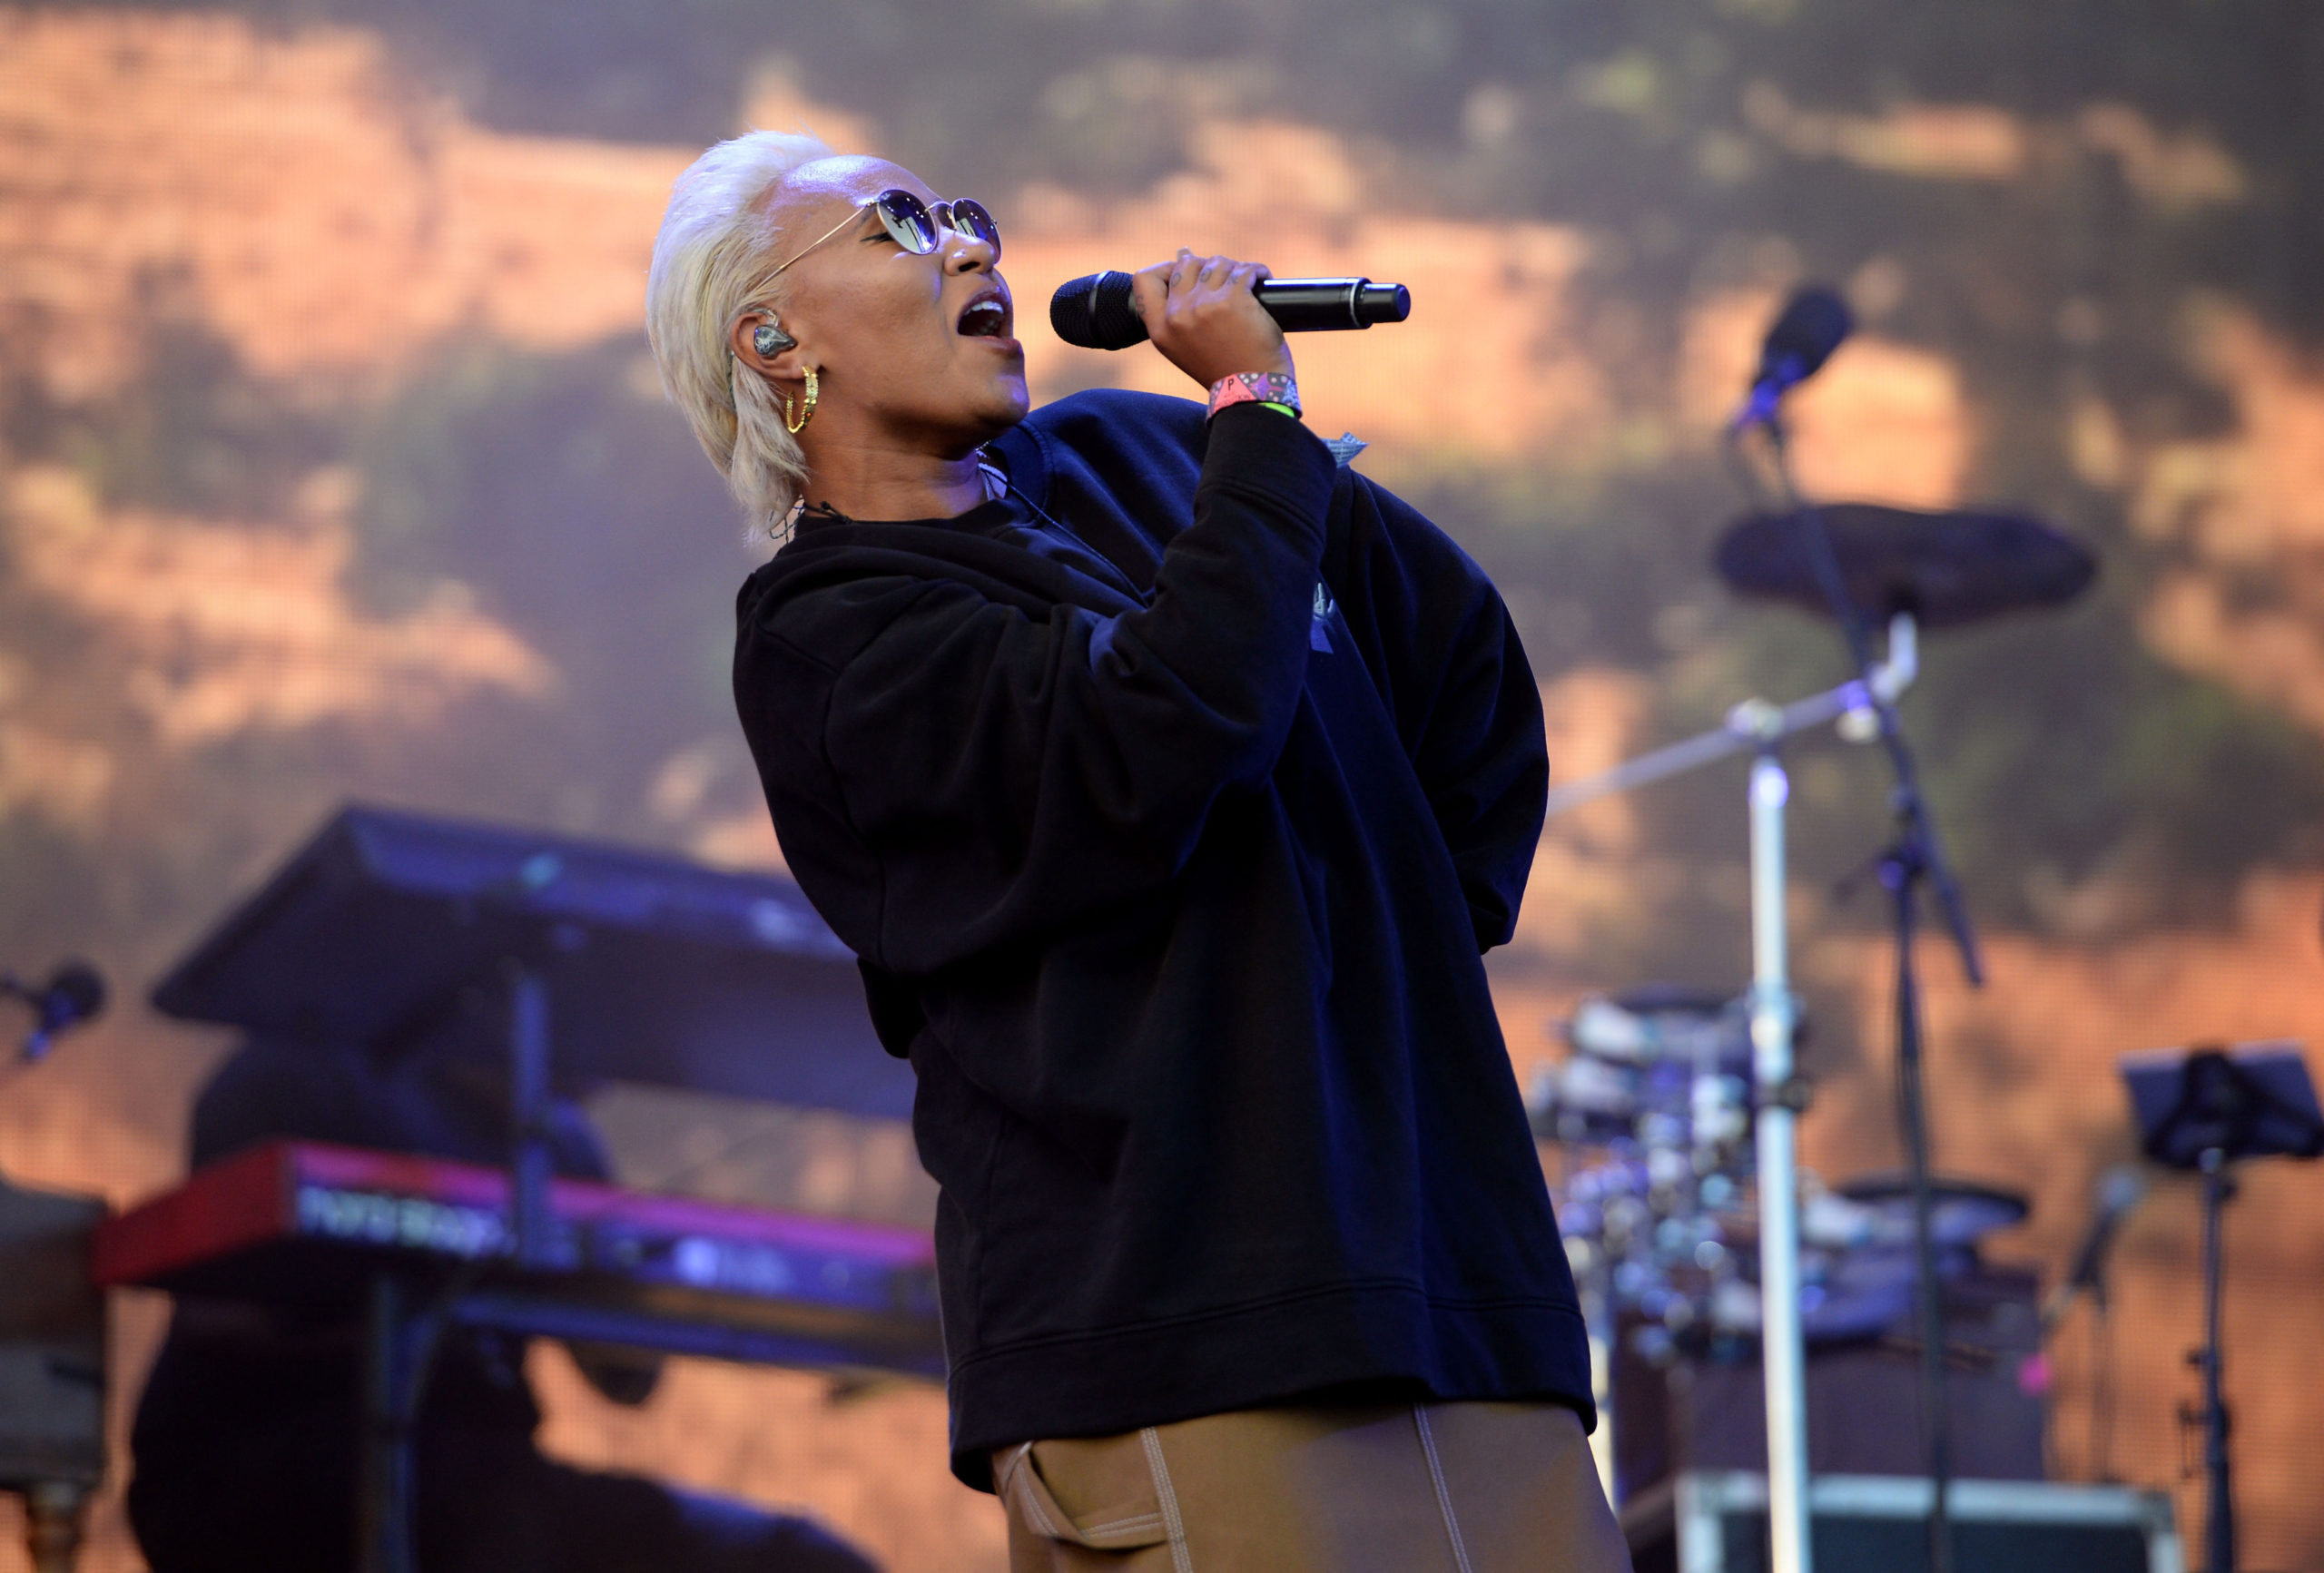 Emily Sande performing on the Other Stage at Glastonbury Festival, at Worthy Farm in Somerset. PRESS ASSOCIATION Photo. Picture date: Sunday June 25, 2017. See PA story SHOWBIZ Glastonbury. Photo credit should read: Ben Birchall/PA Wire